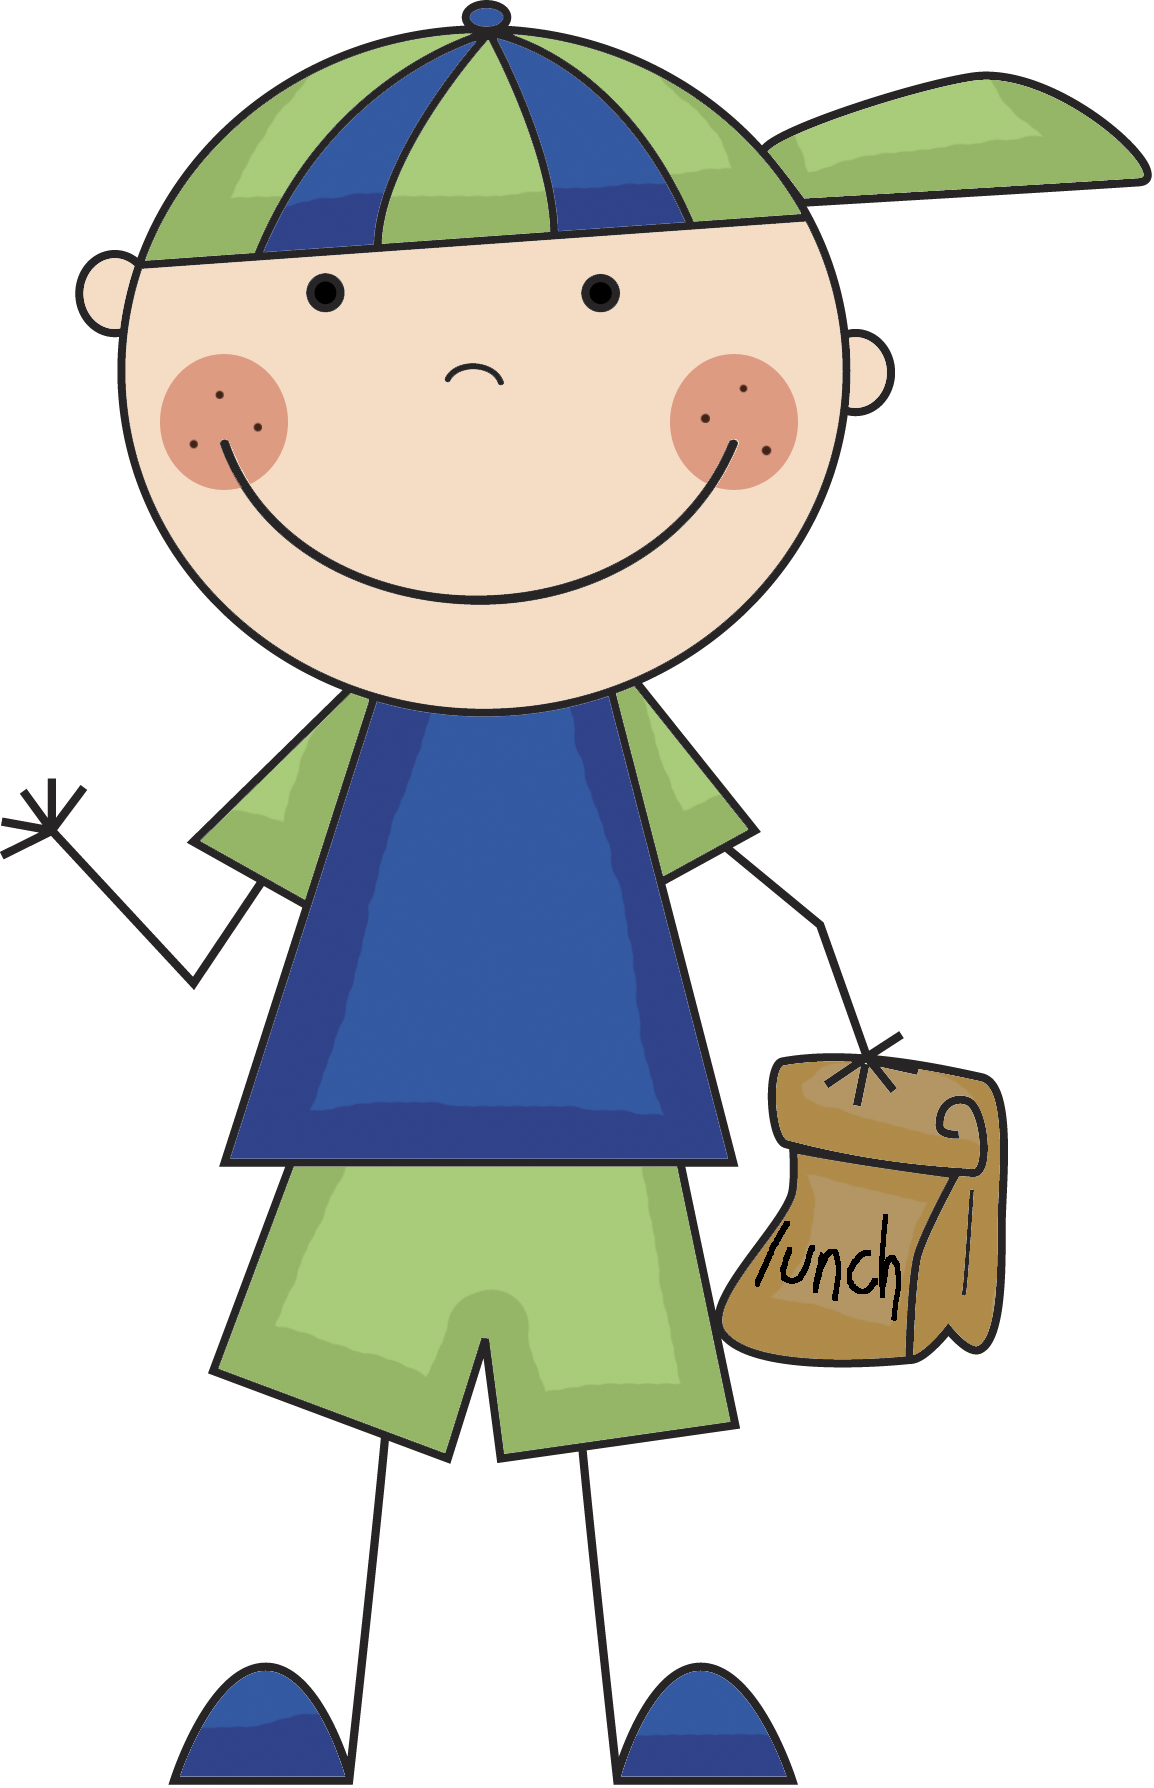 Boy Lunch Png image #4955